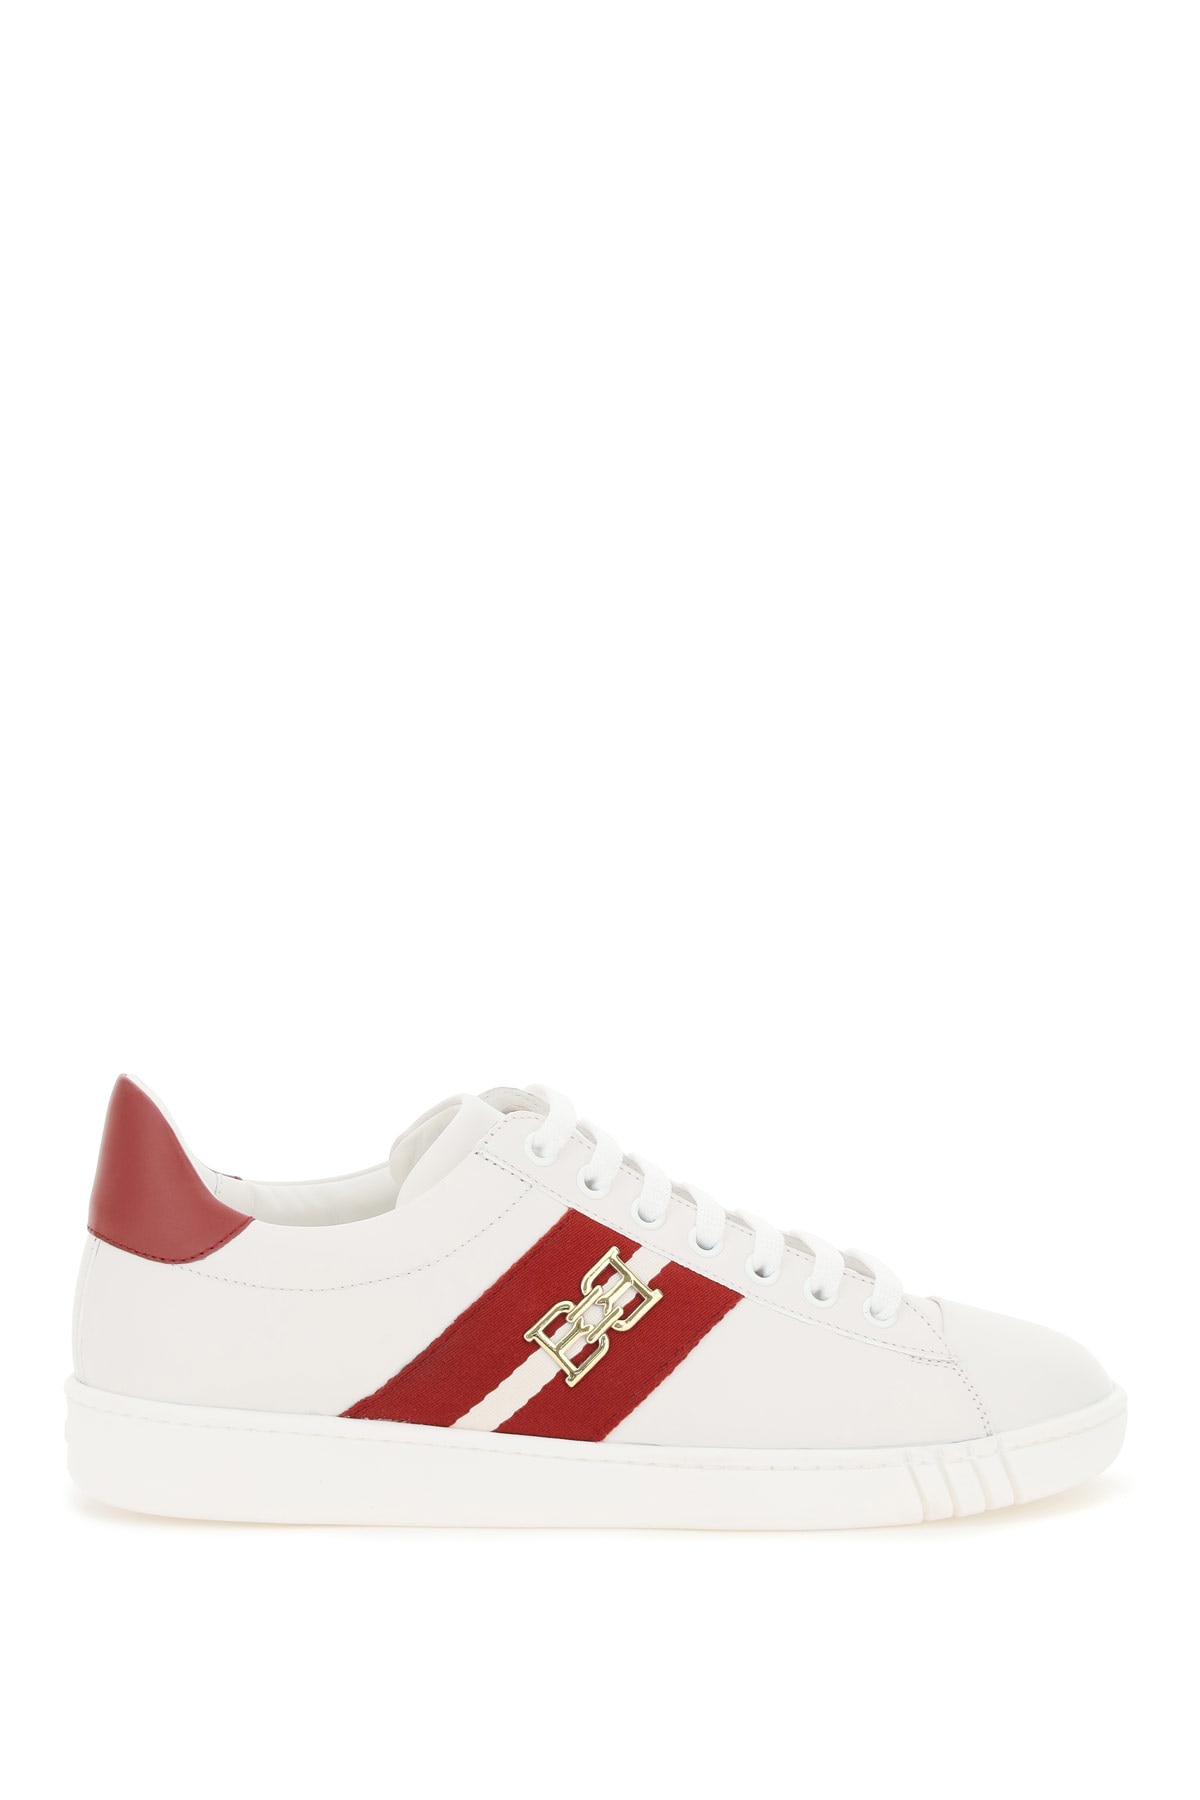 BALLY VIKY SNEAKERS 37 White, Red Leather